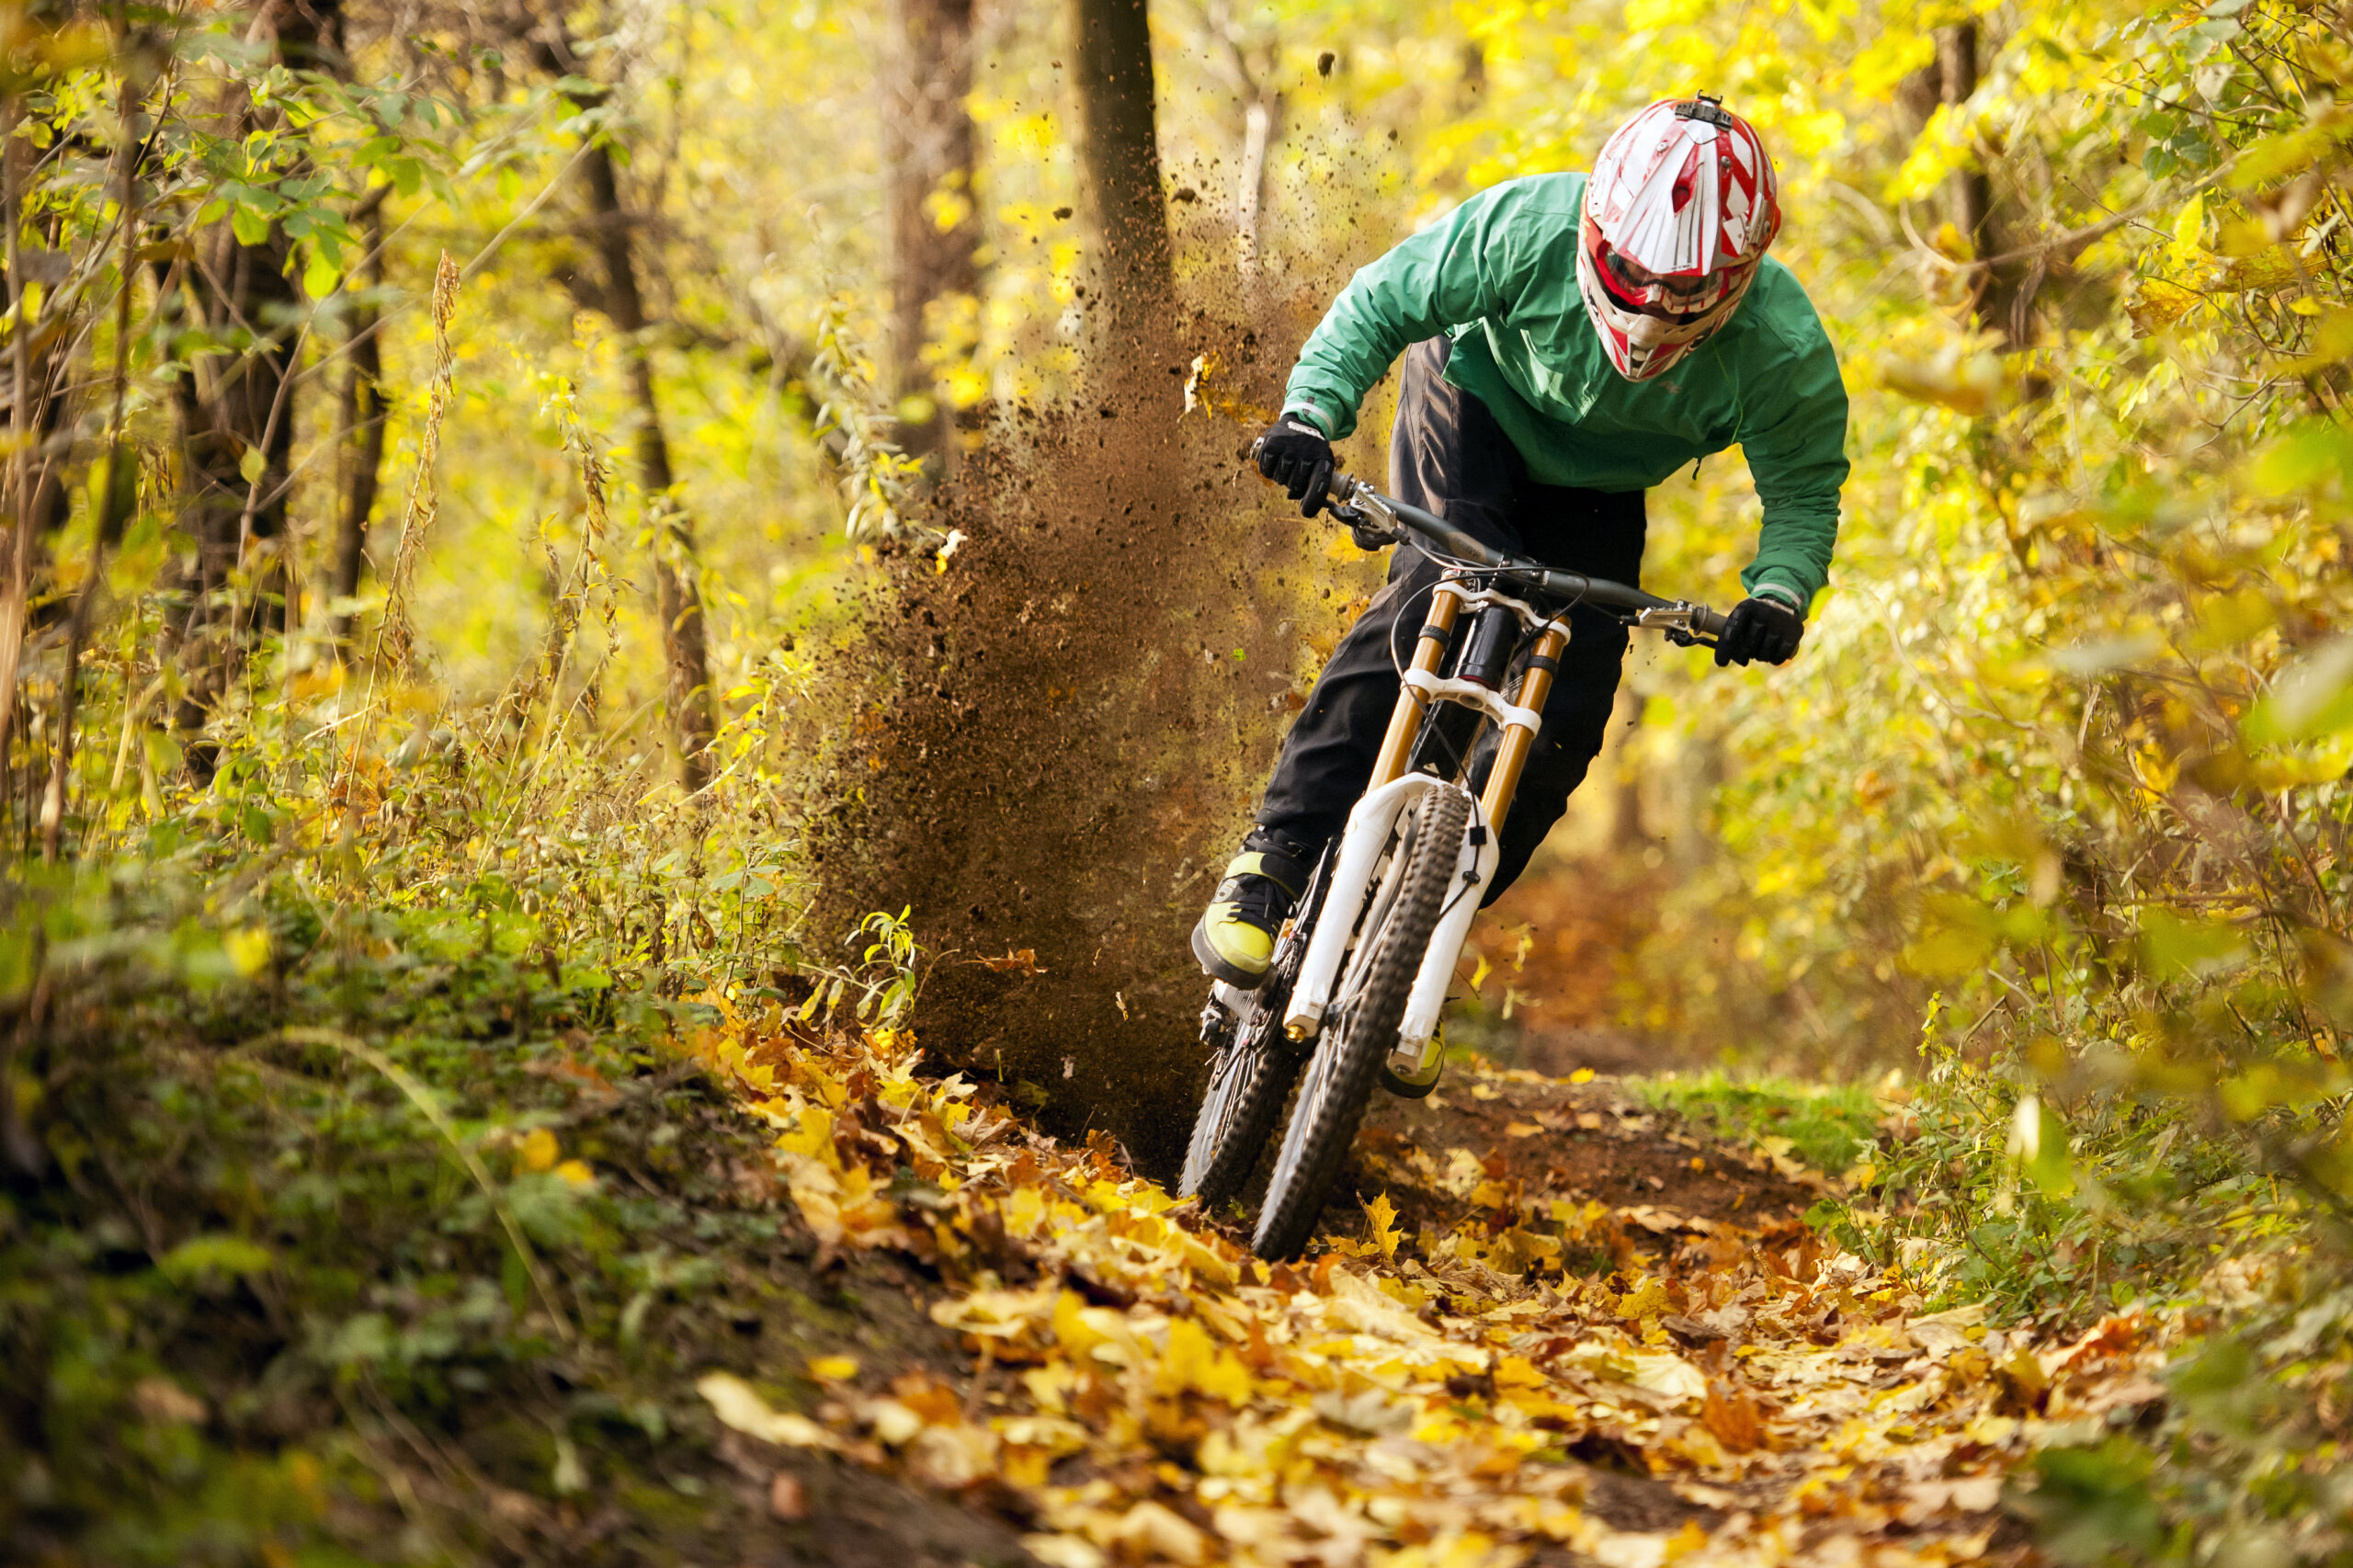 Riding in the Autumn